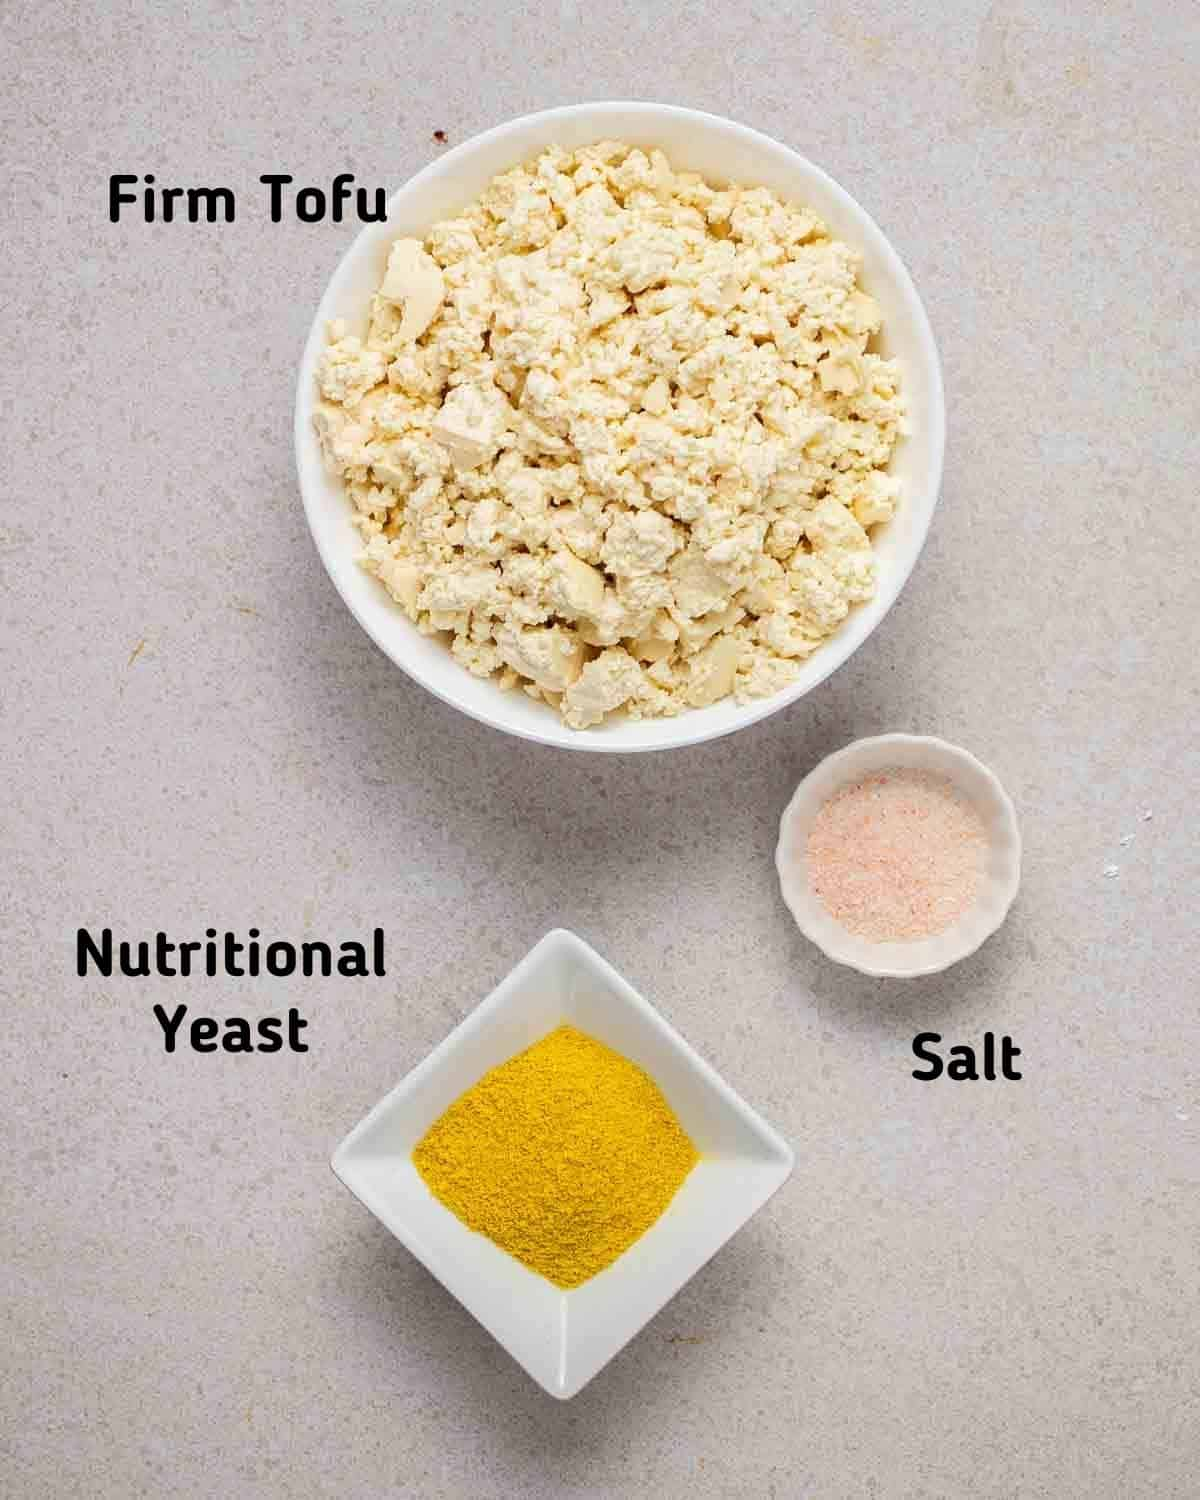 Showing ingredients needed to make scrambled tofu  like tofu, nutritional yeast and salt on a grey background.